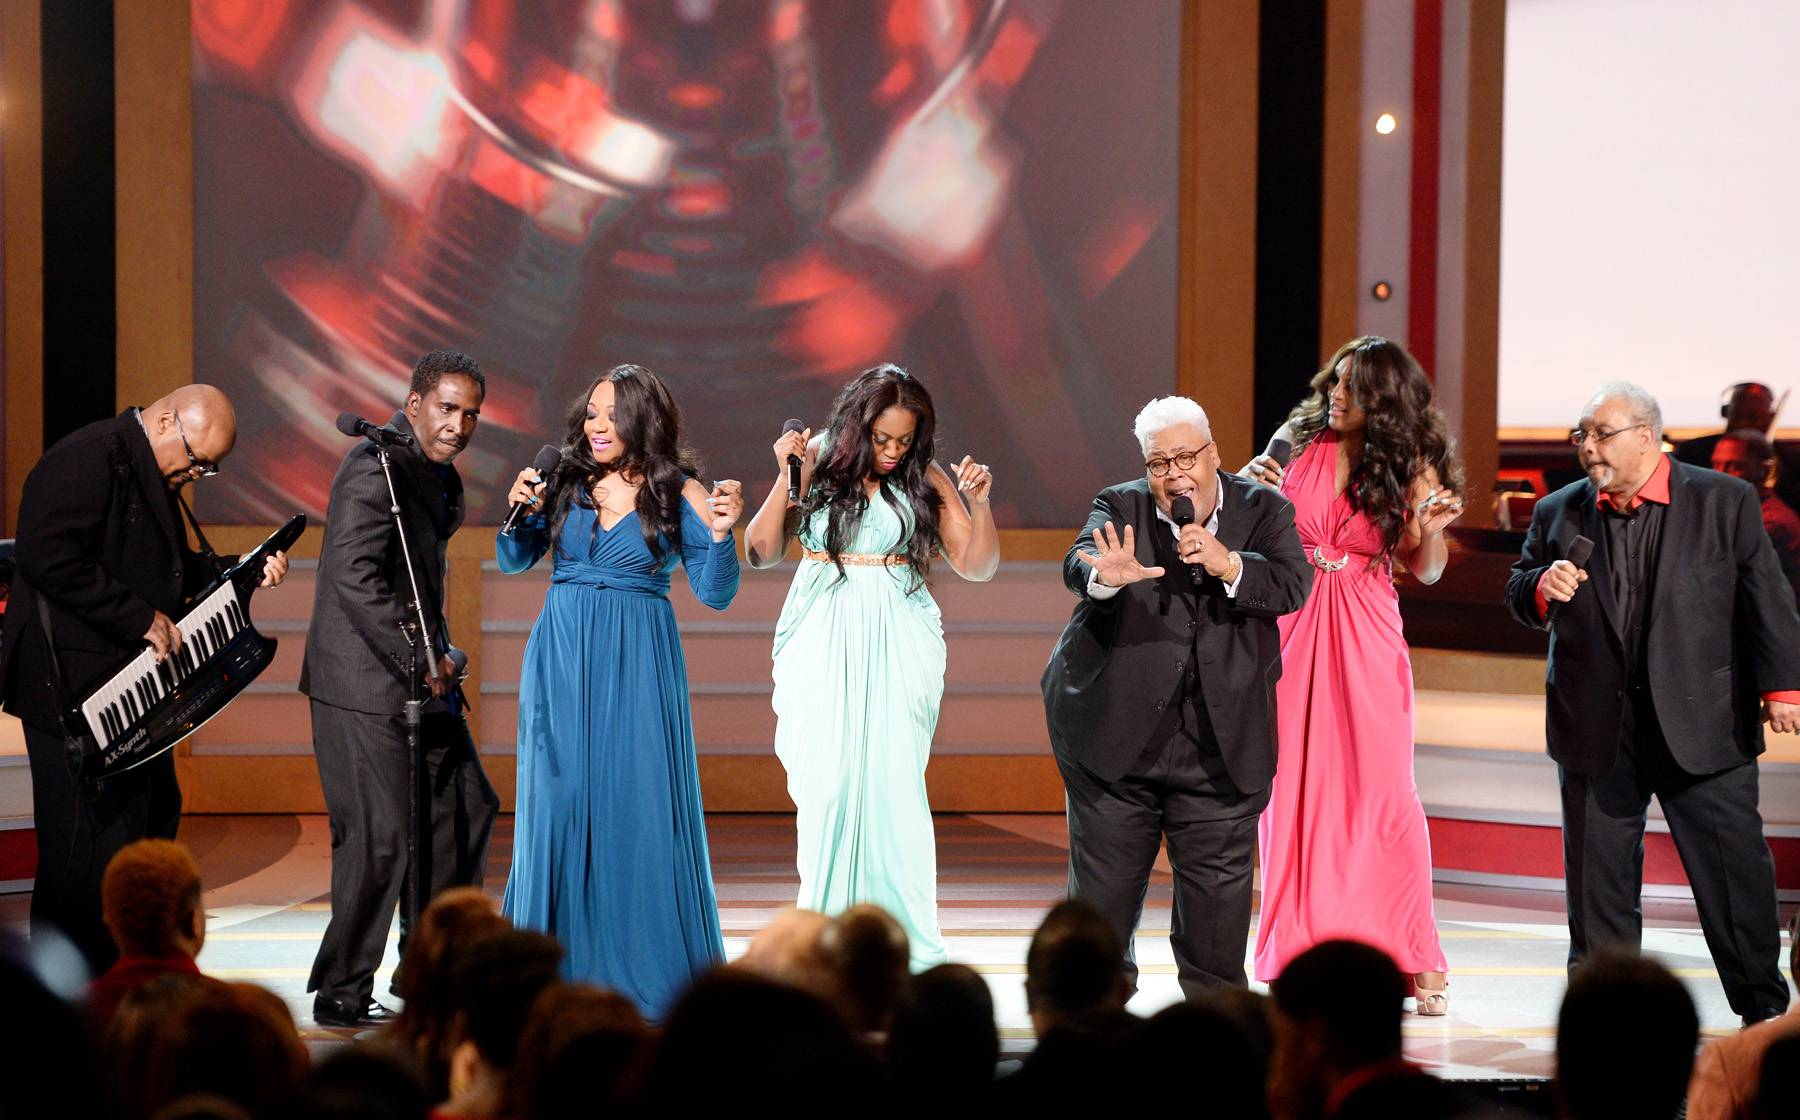 """The Voices - After their indivdual performances, SWV joined The Rance Allen Group and brought the house down with the collaborative number, """"Got Me Dancin'.""""(Photo: Jason Kempin/Getty Images for BET)"""